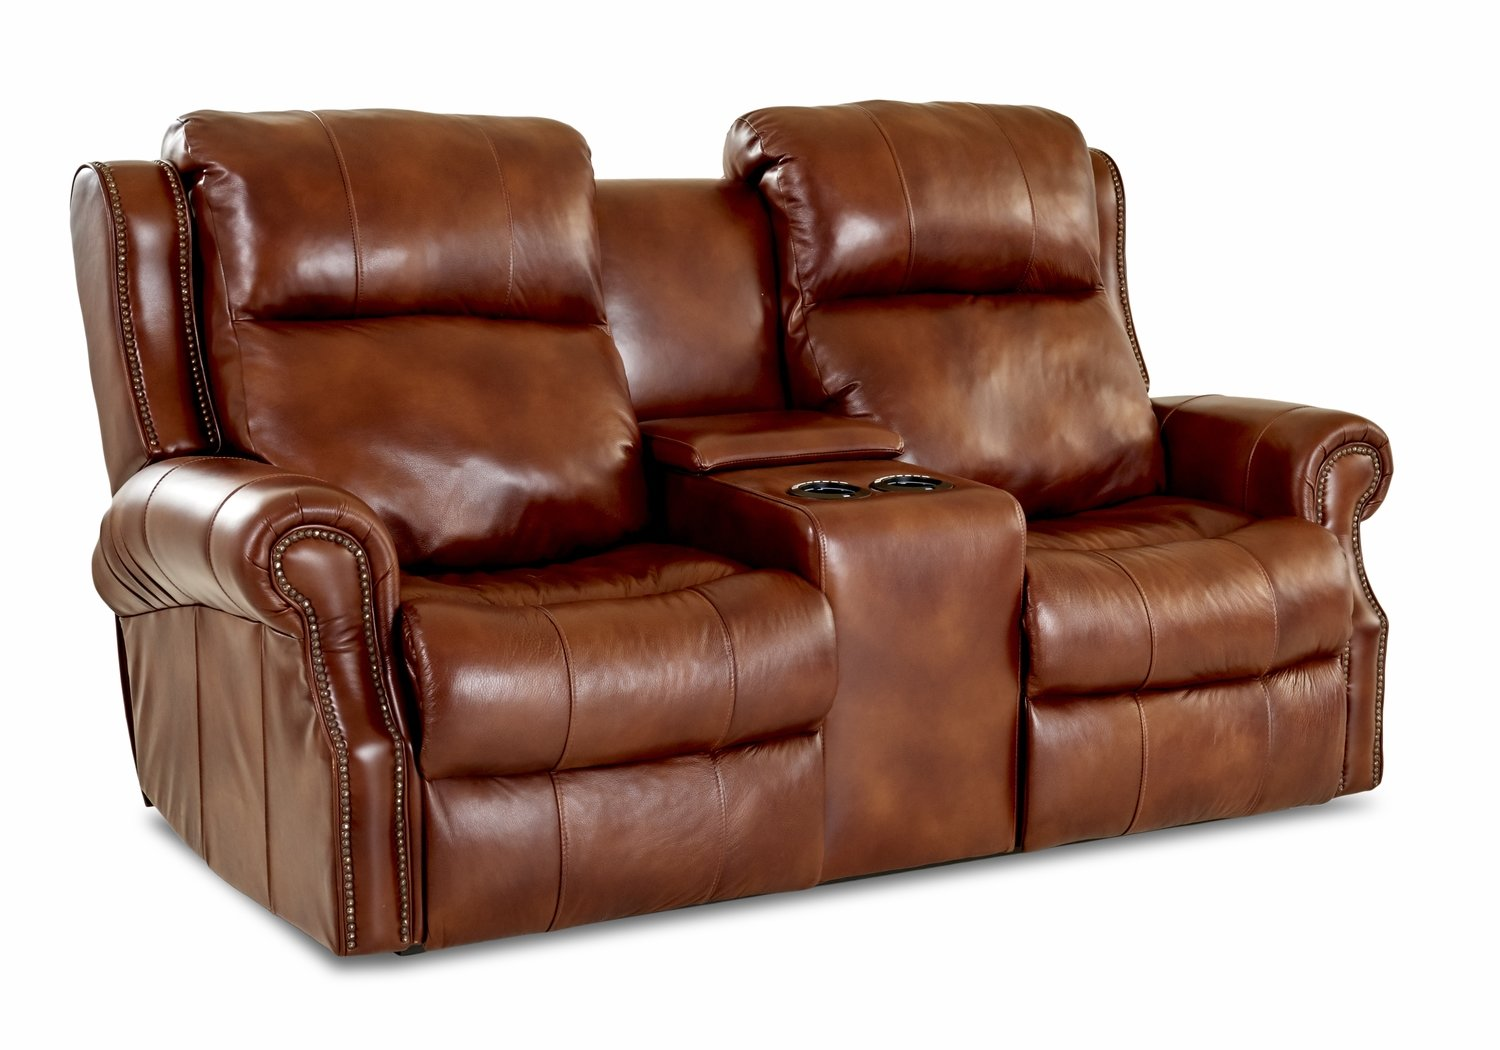 Blue Ridge 4.1 Console Reclining Loveseat (Manual)